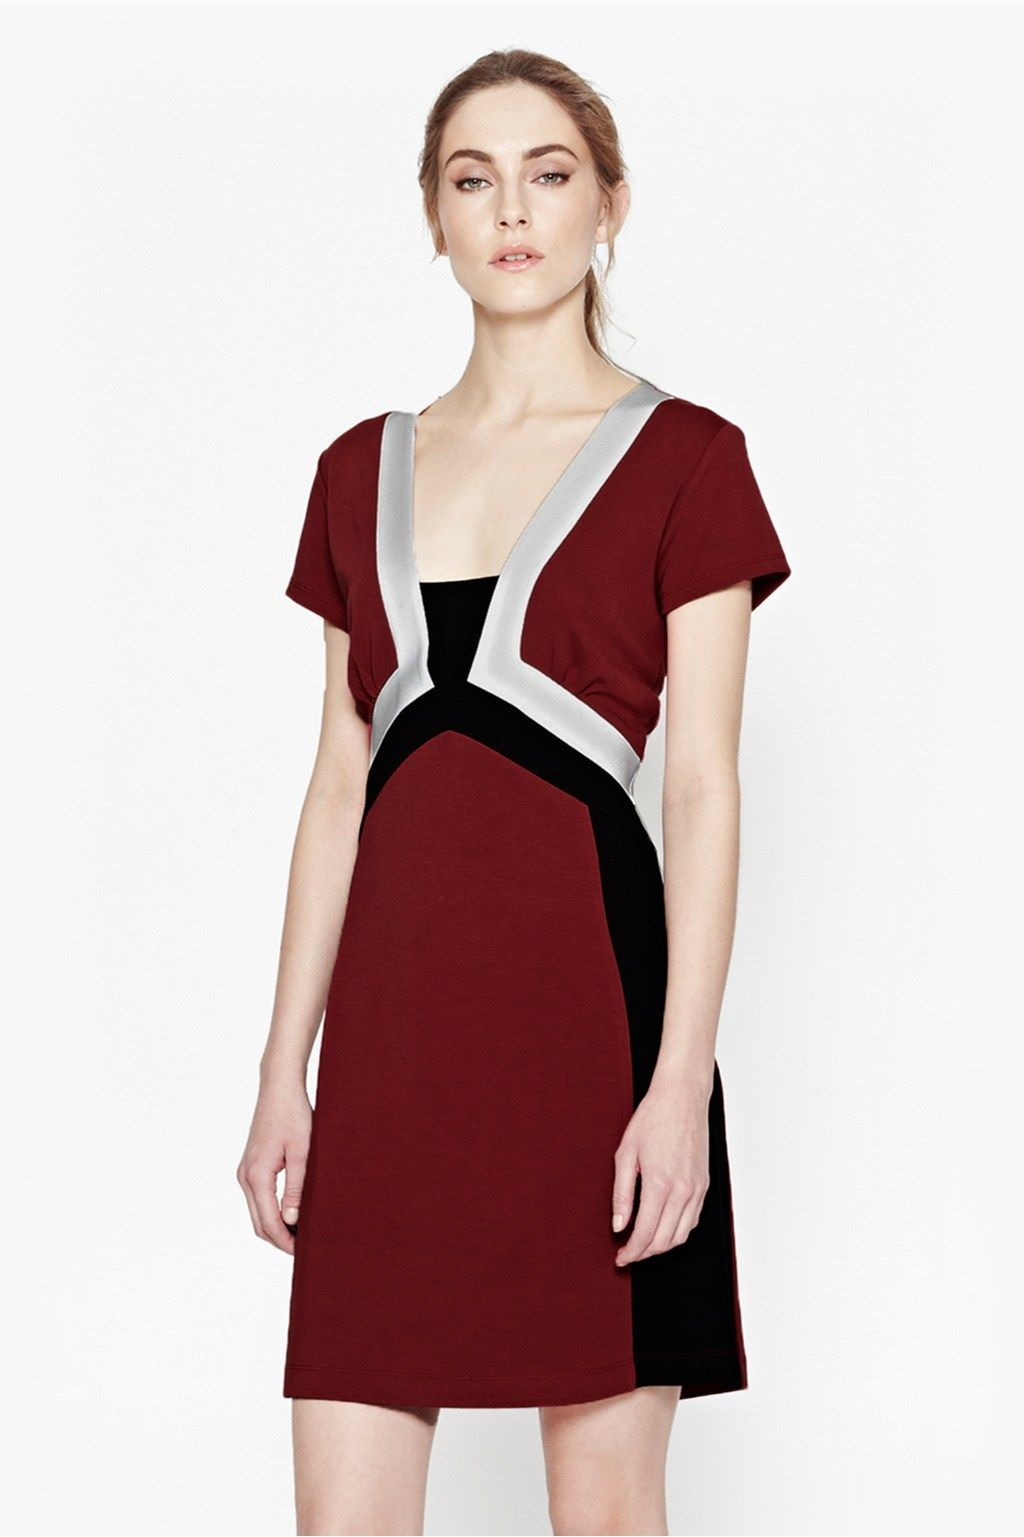 Ulue ucliue fitted dress with colourblock panels ucliue ucliue boat neck